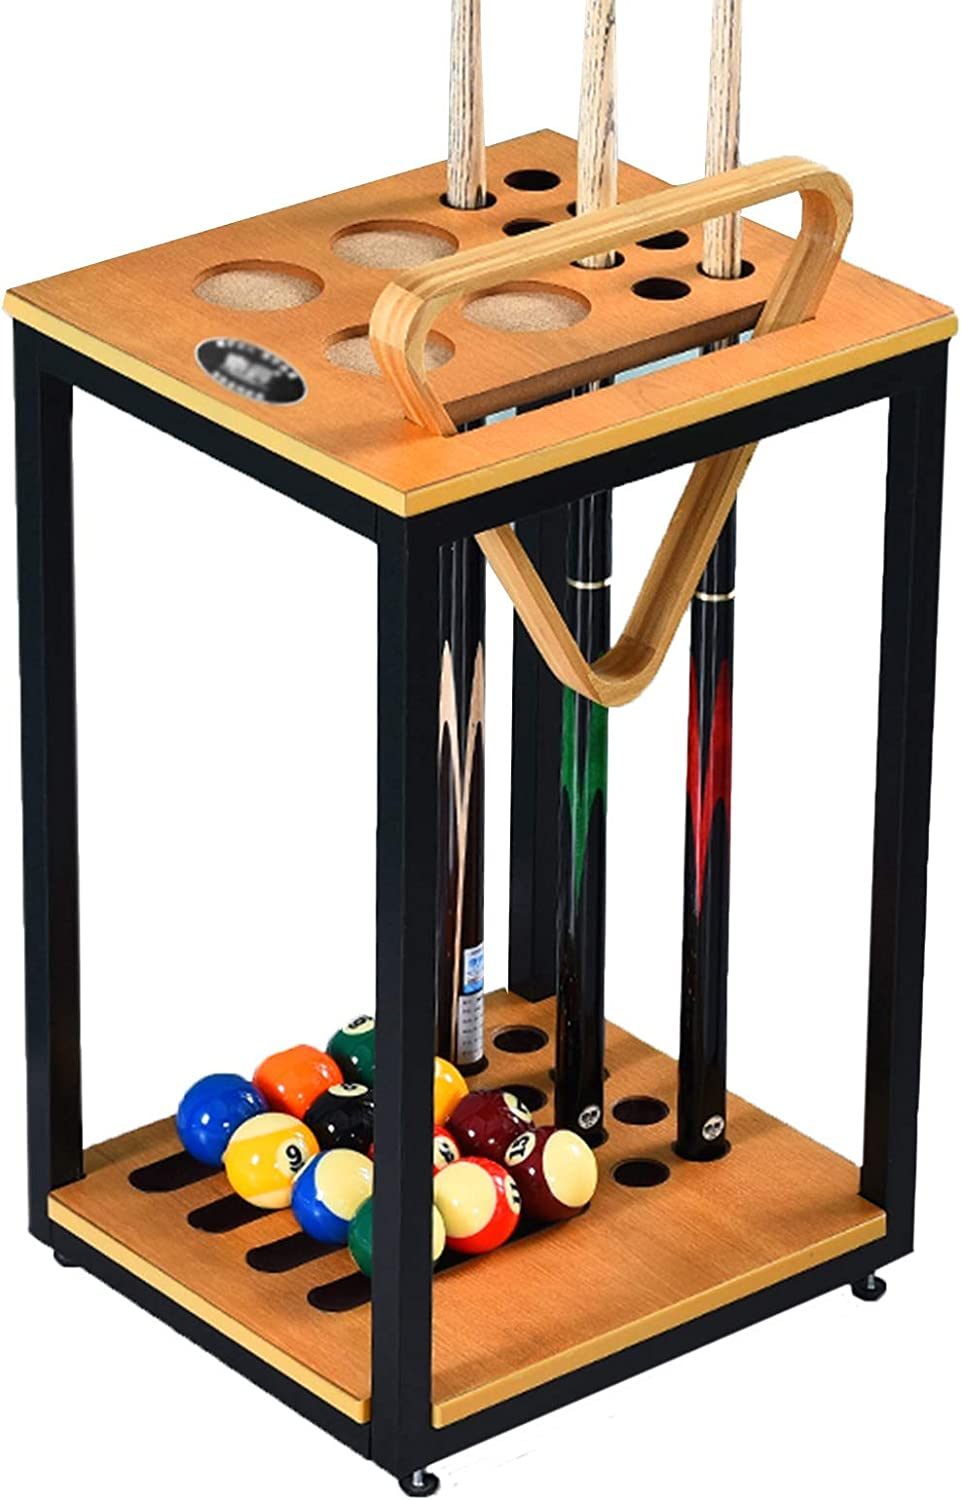 LLFF Small Pool Outstanding Cue Rack Floor Cues Holds 5 ☆ very popular Wooden Standing 8 Mo